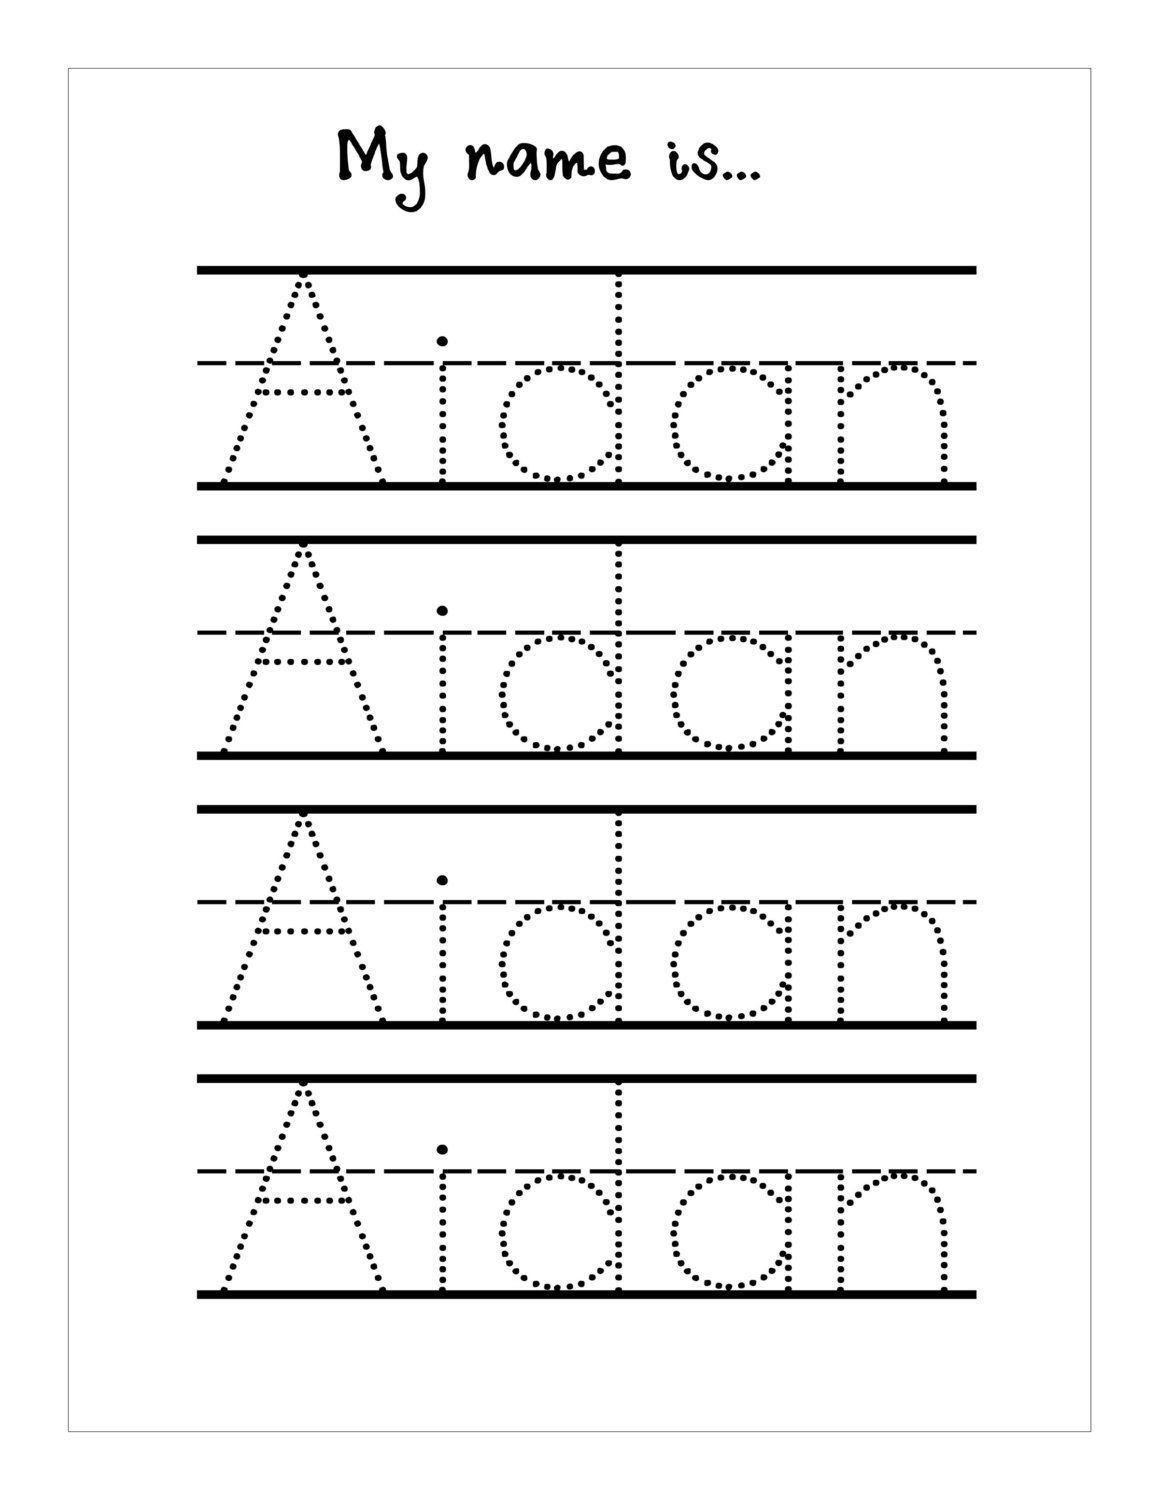 Traceable Names Worksheets | Name Tracing Worksheets throughout Name Tracing Worksheets Kindergarten